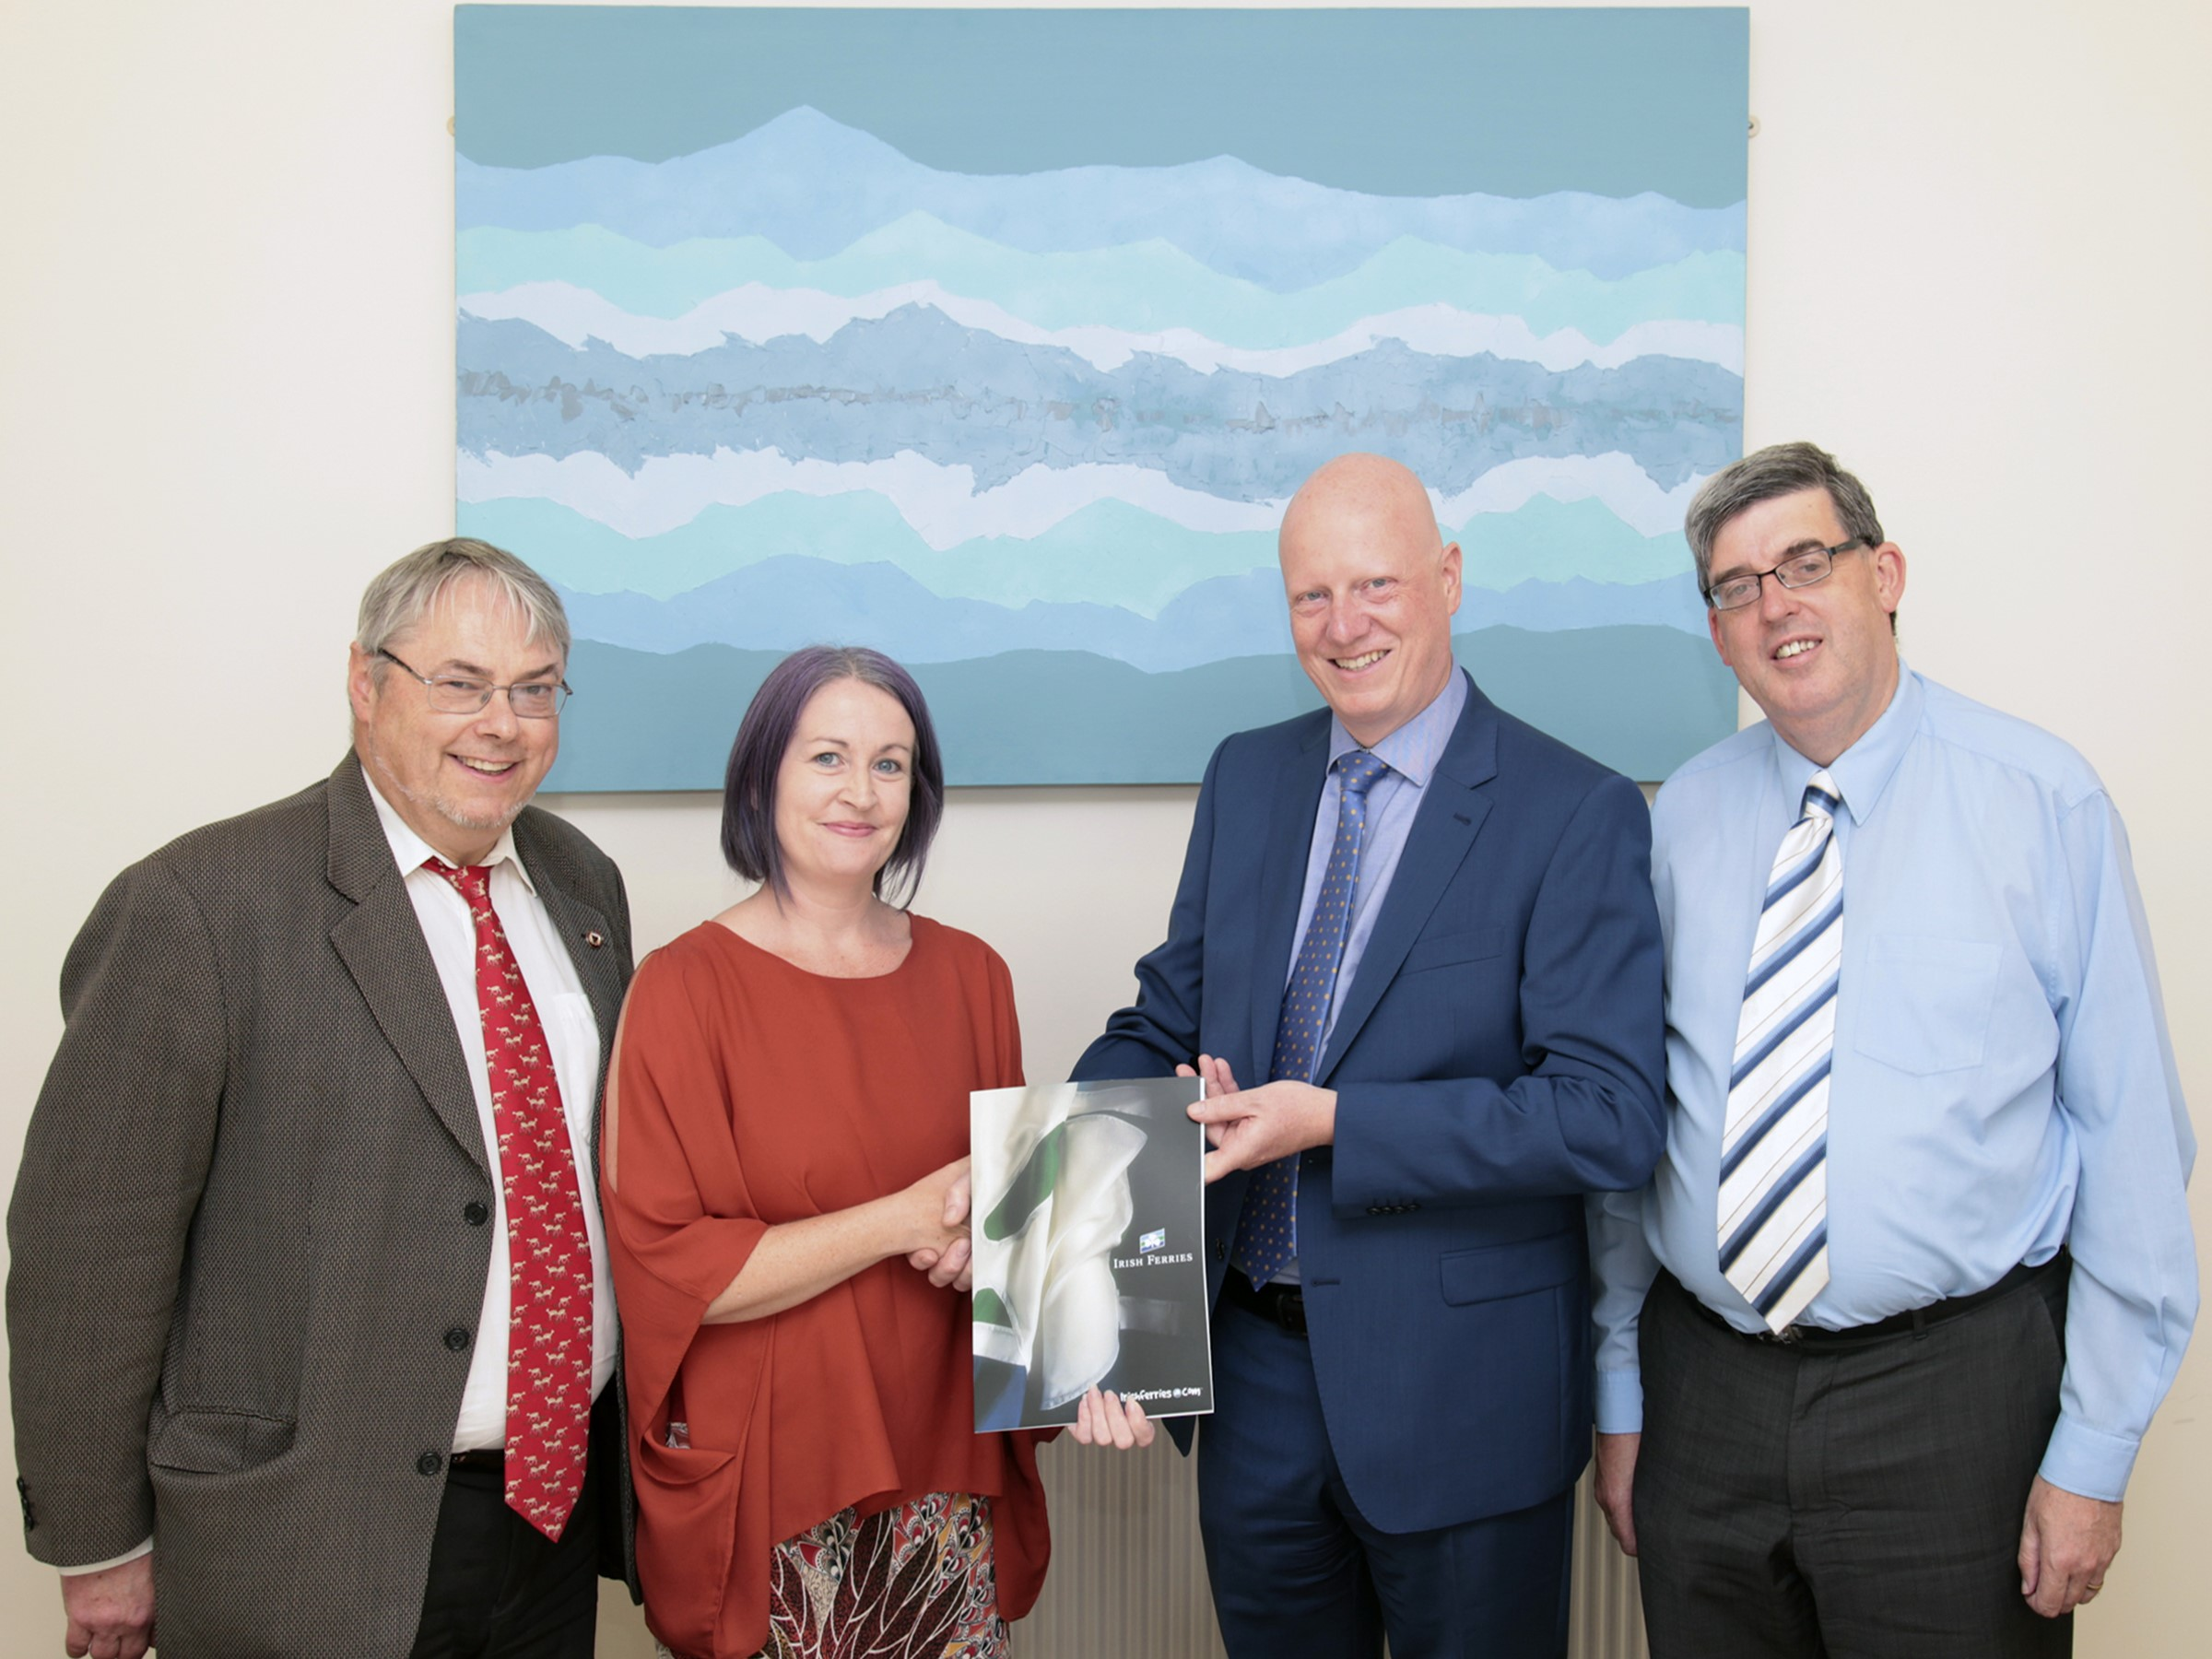 Mr John Maher, Finance lecturer WIT, Ms Elizabeth Reynolds from Waterford, Tom Corcoran, Company Secretary of Irish Continental Group ICG Plc and Mr Ger Long, Head of Department of Accounting & Economics. Photo courtesy of George Goulding